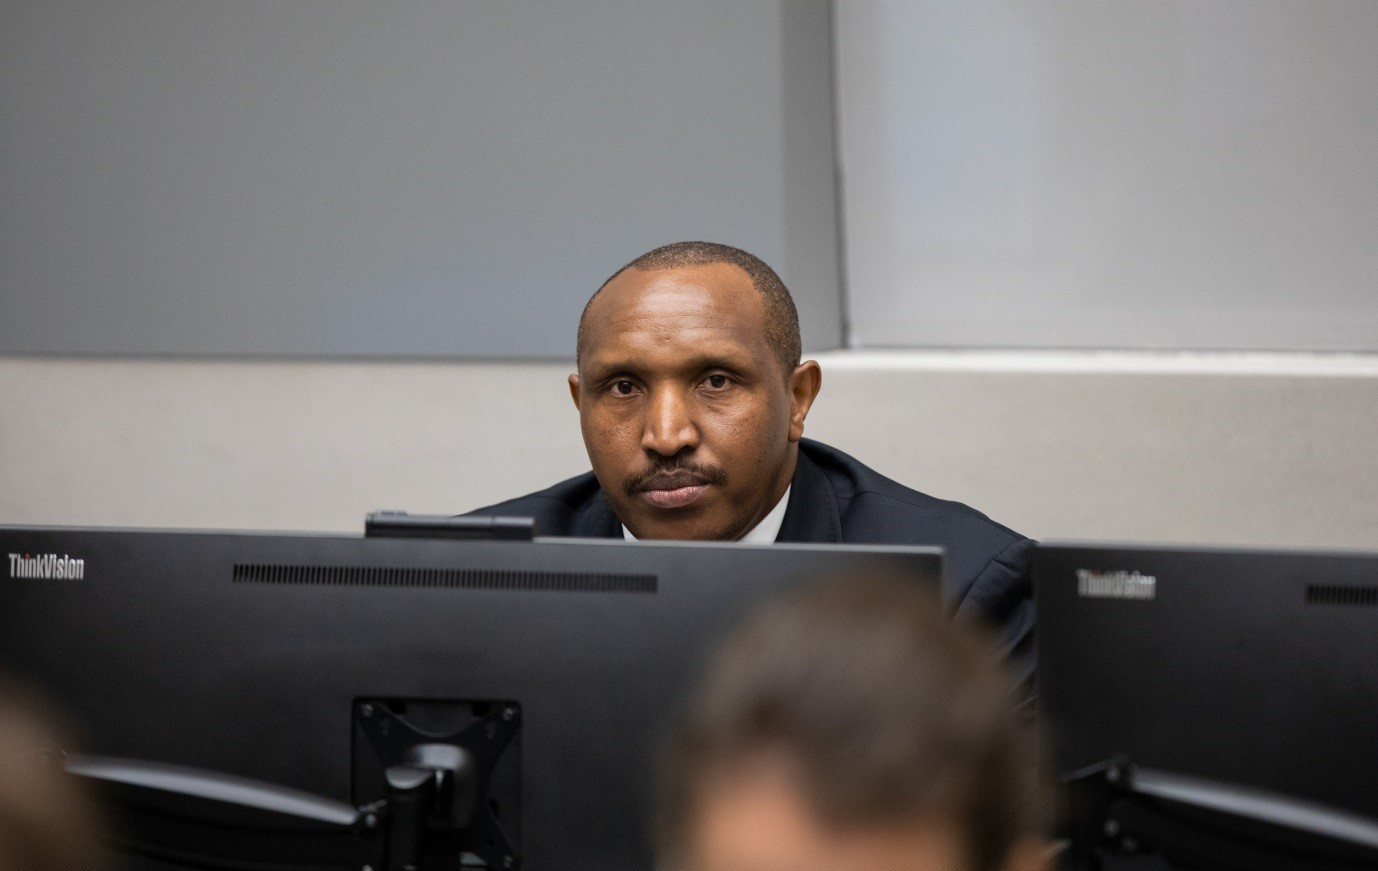 Why we declared Bosco Ntaganda guilty of war crimes, by ICC